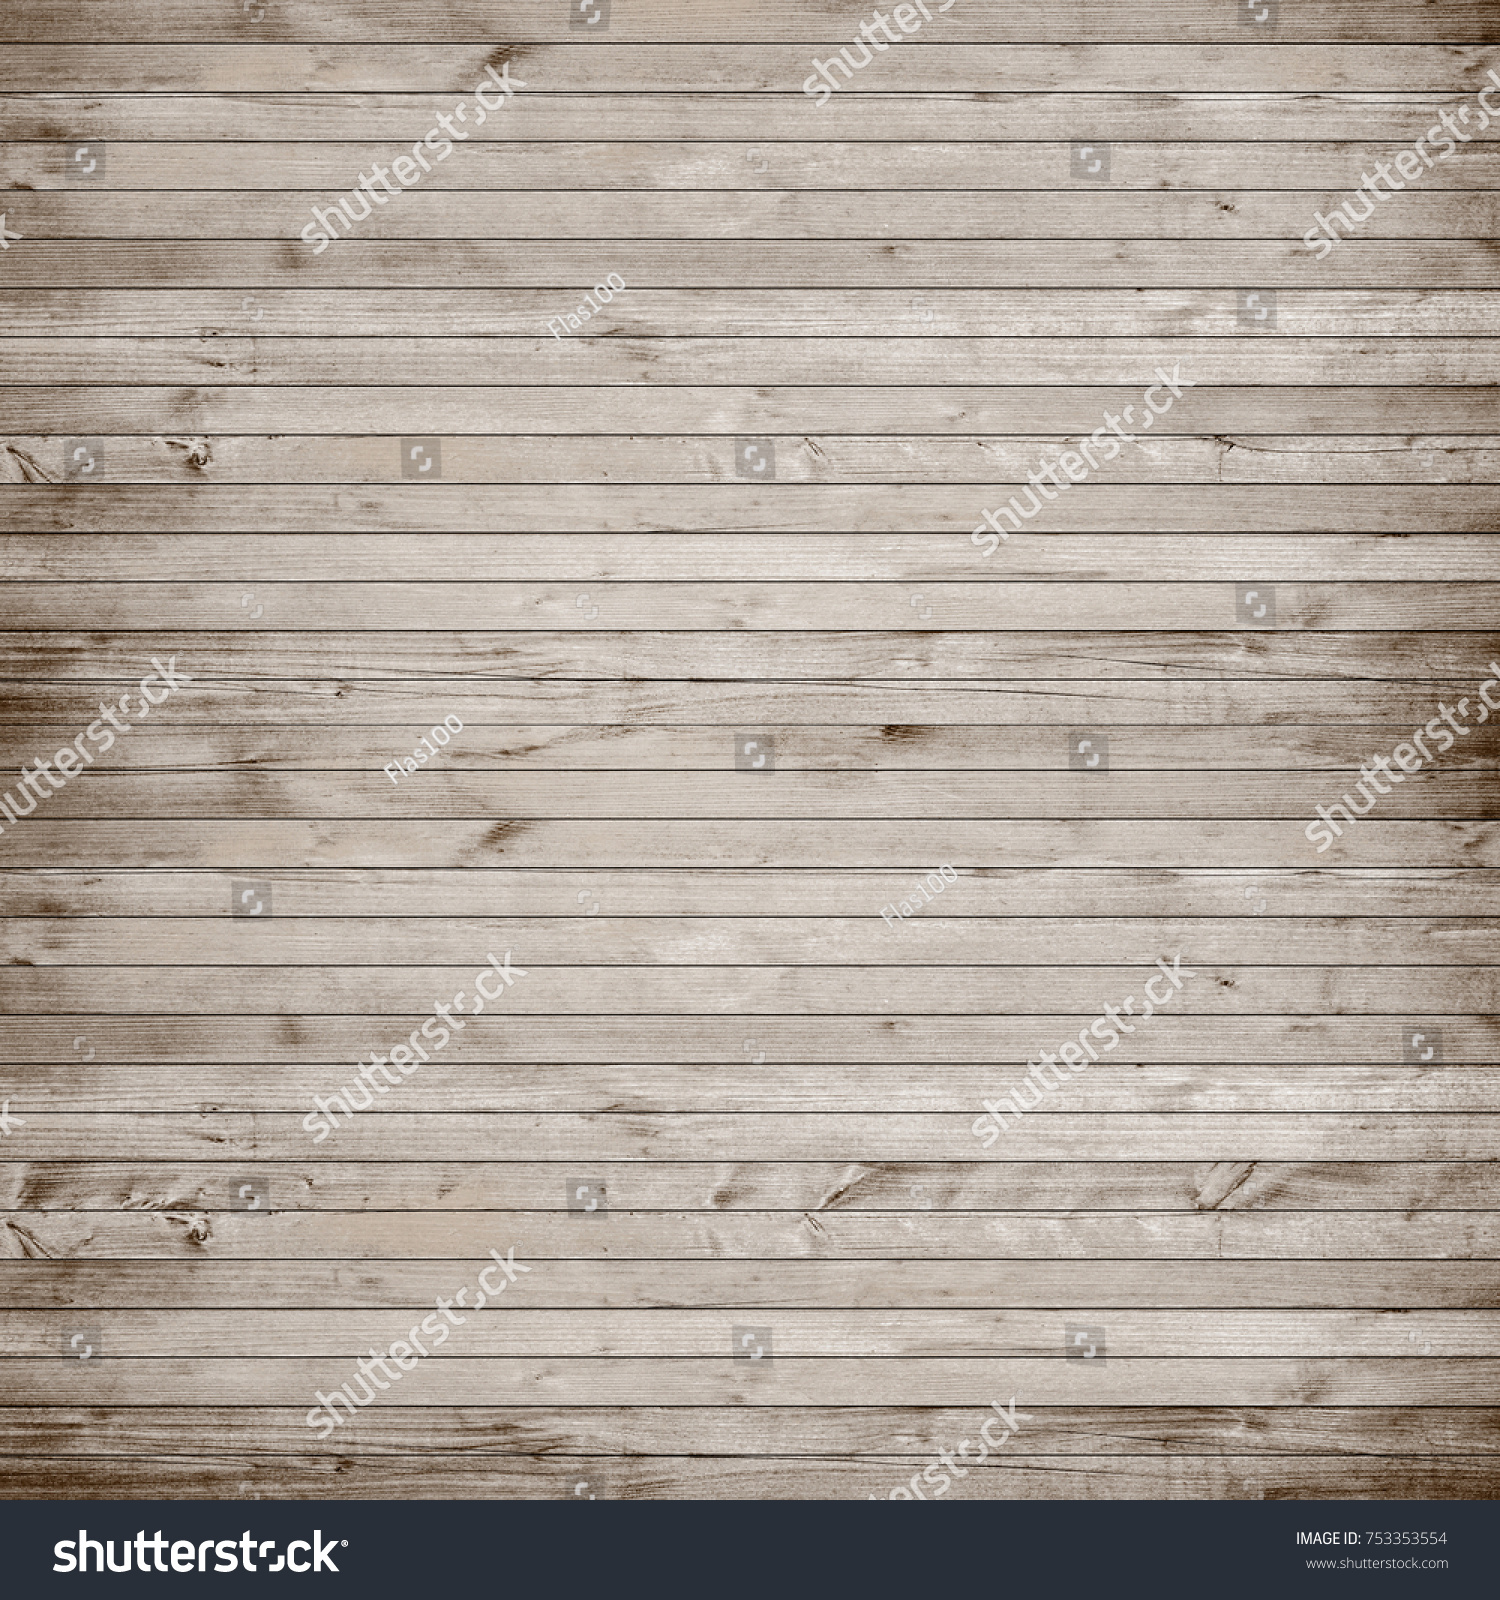 Old Wooden Parquet Table Floor Surface Stock Photo 753353554 ...